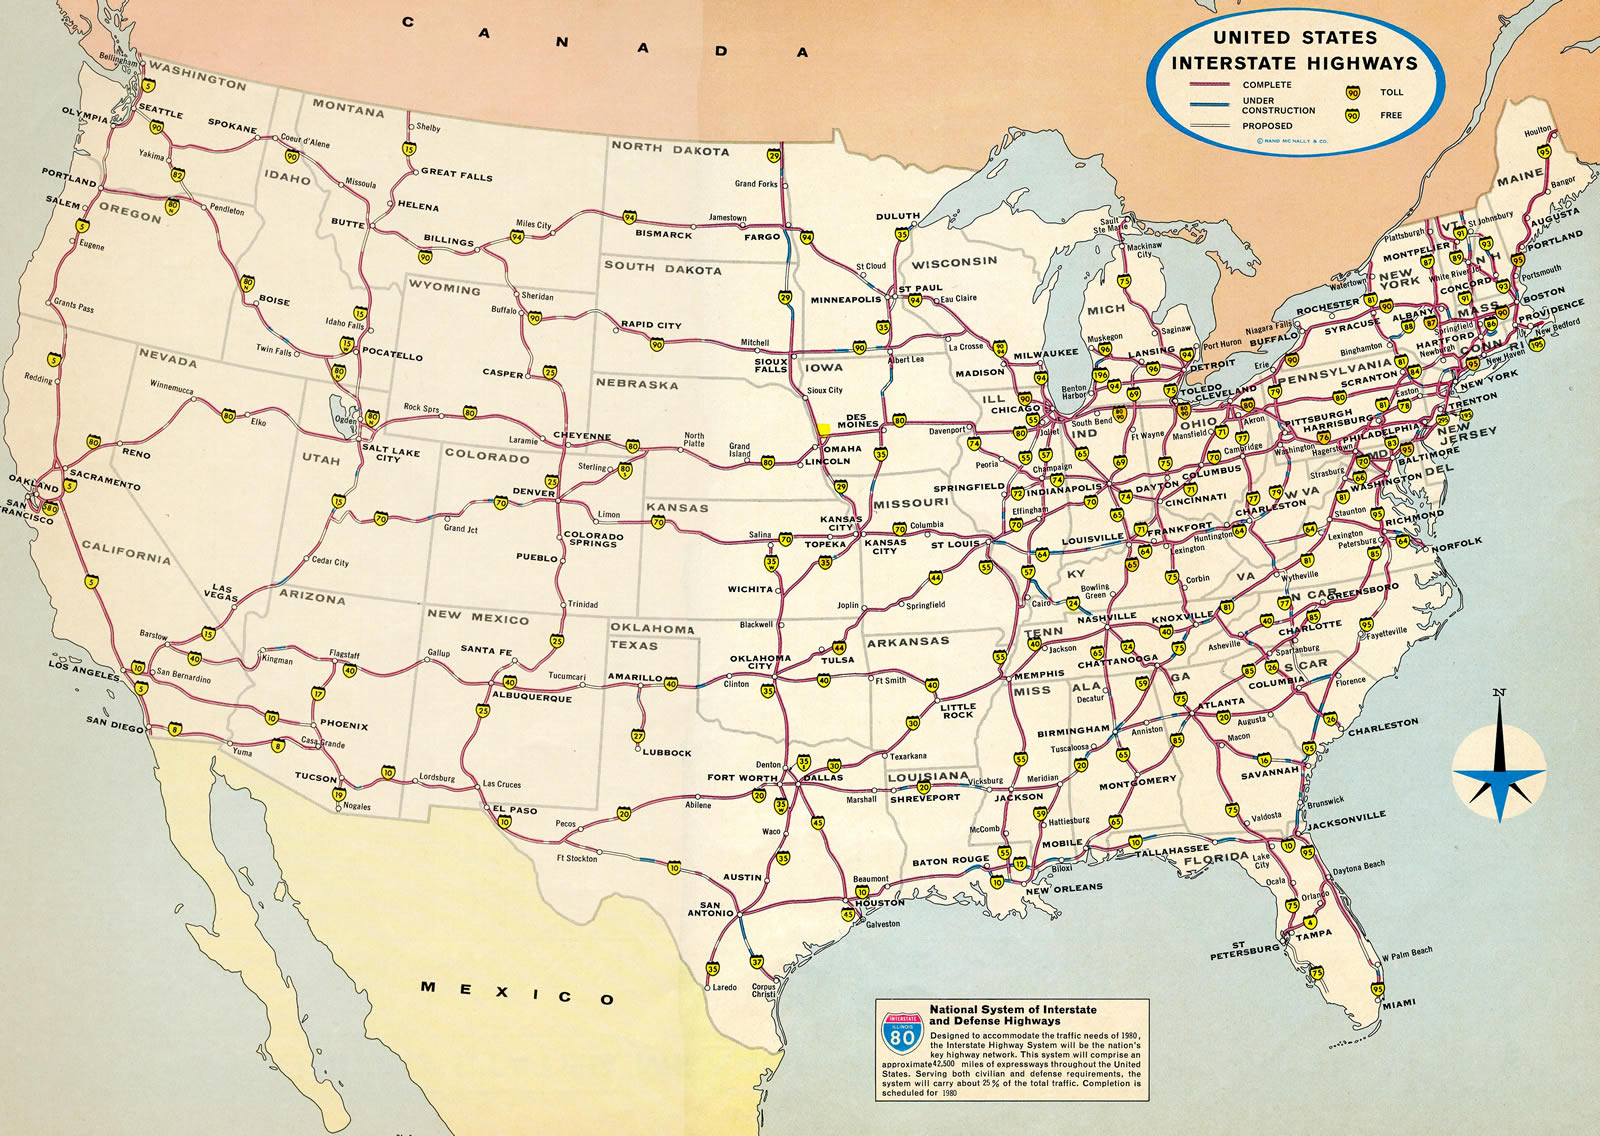 The Interstate Highway system in 1974.